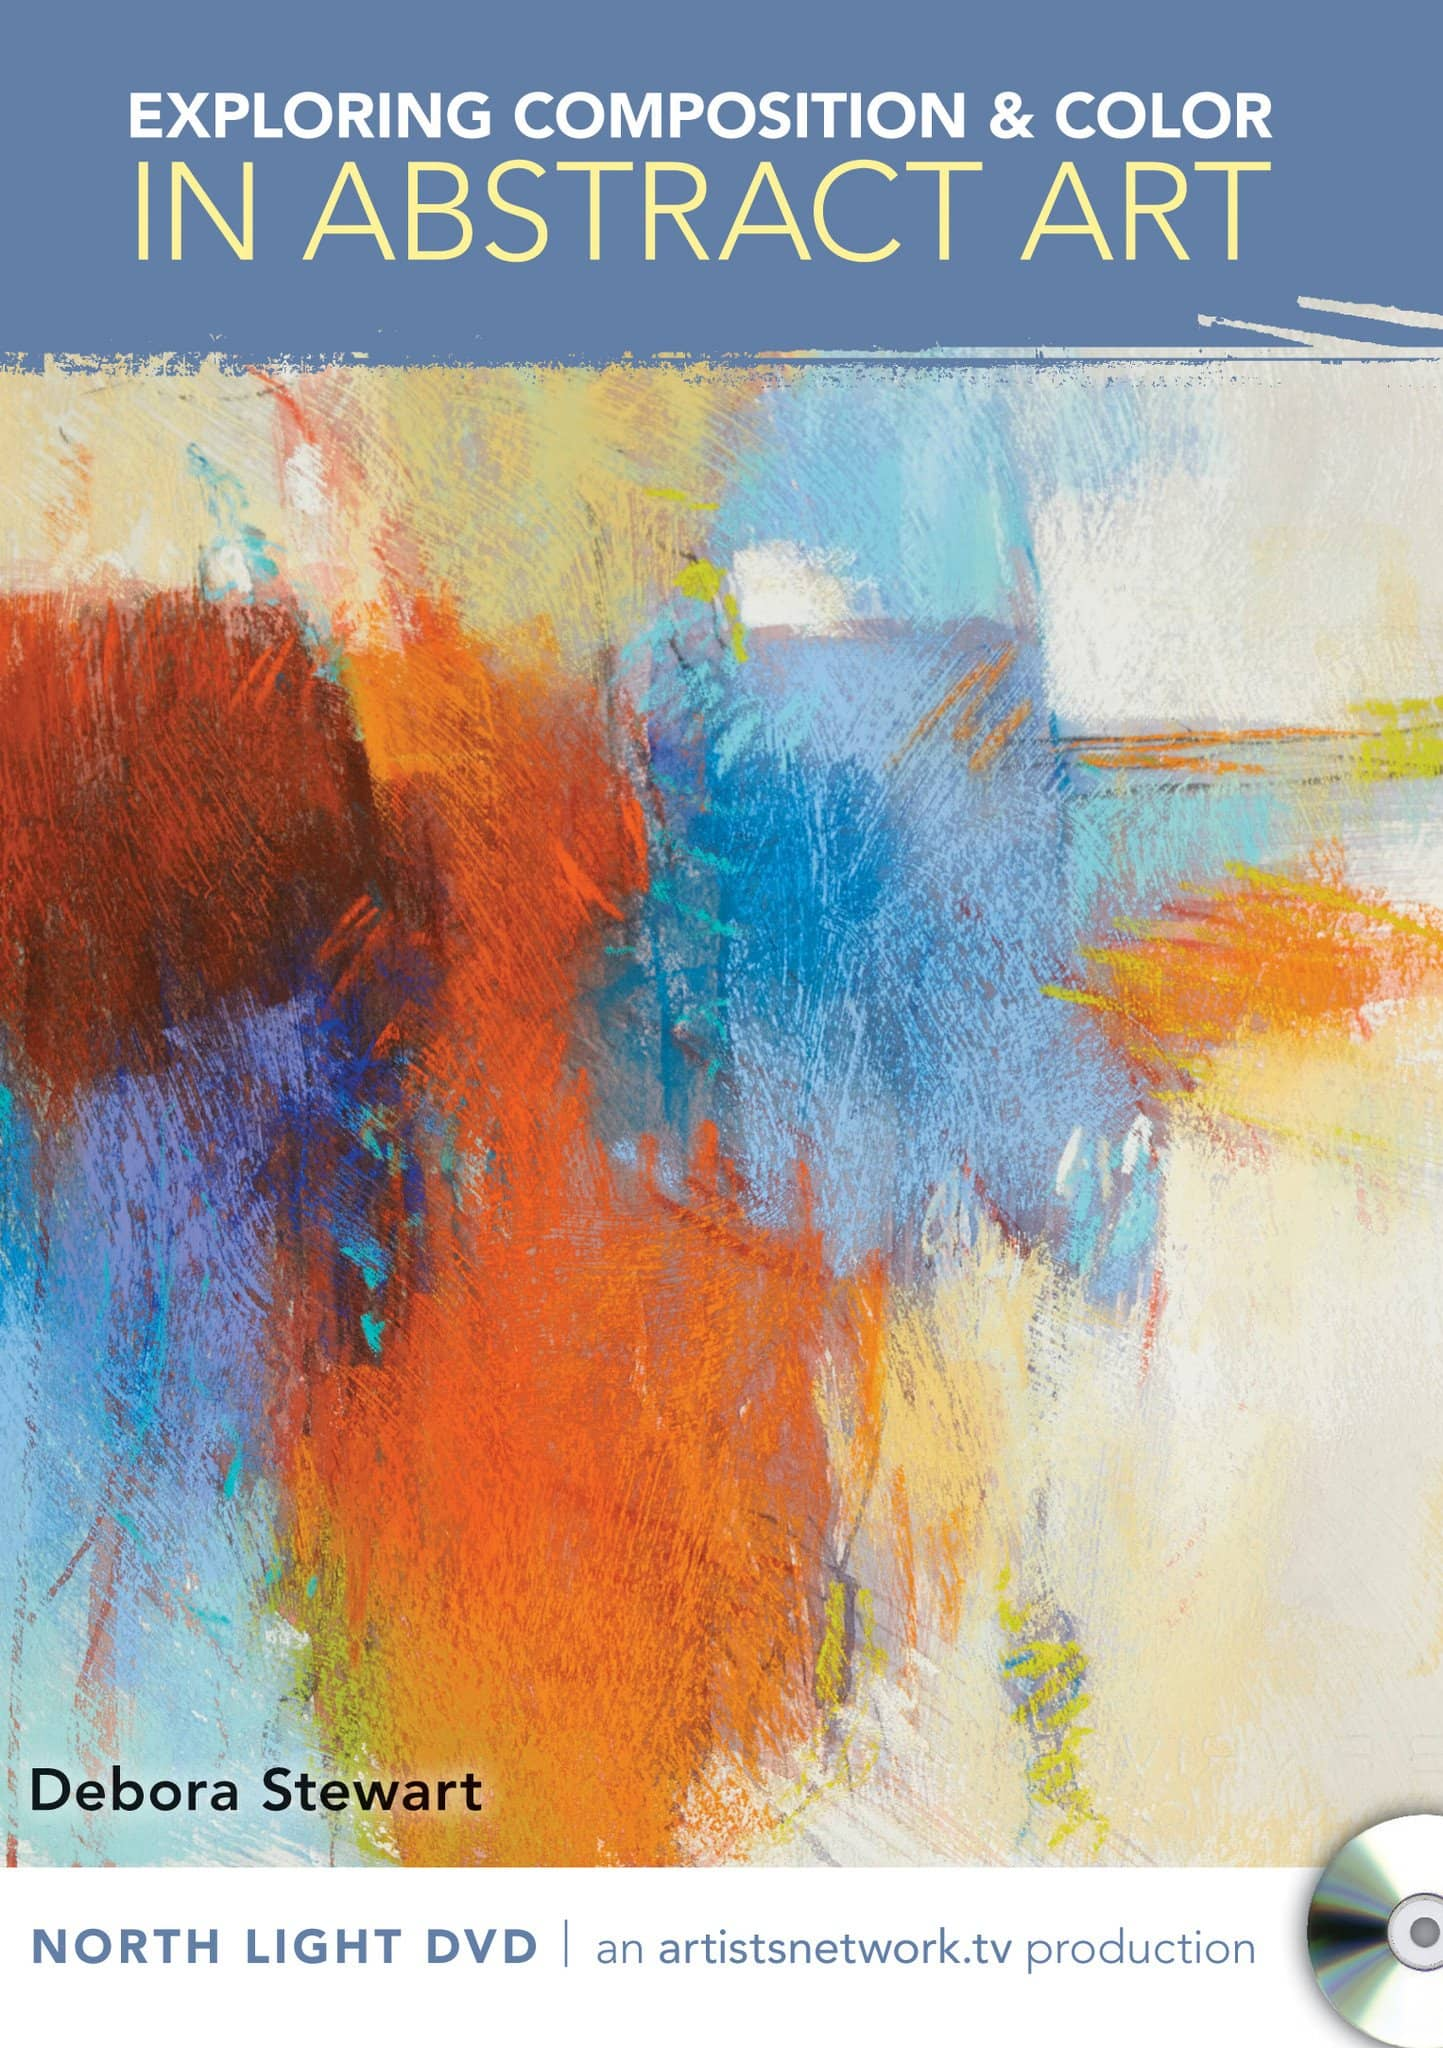 Exploring Composition & Color in Abstract Art with Debora Stewart